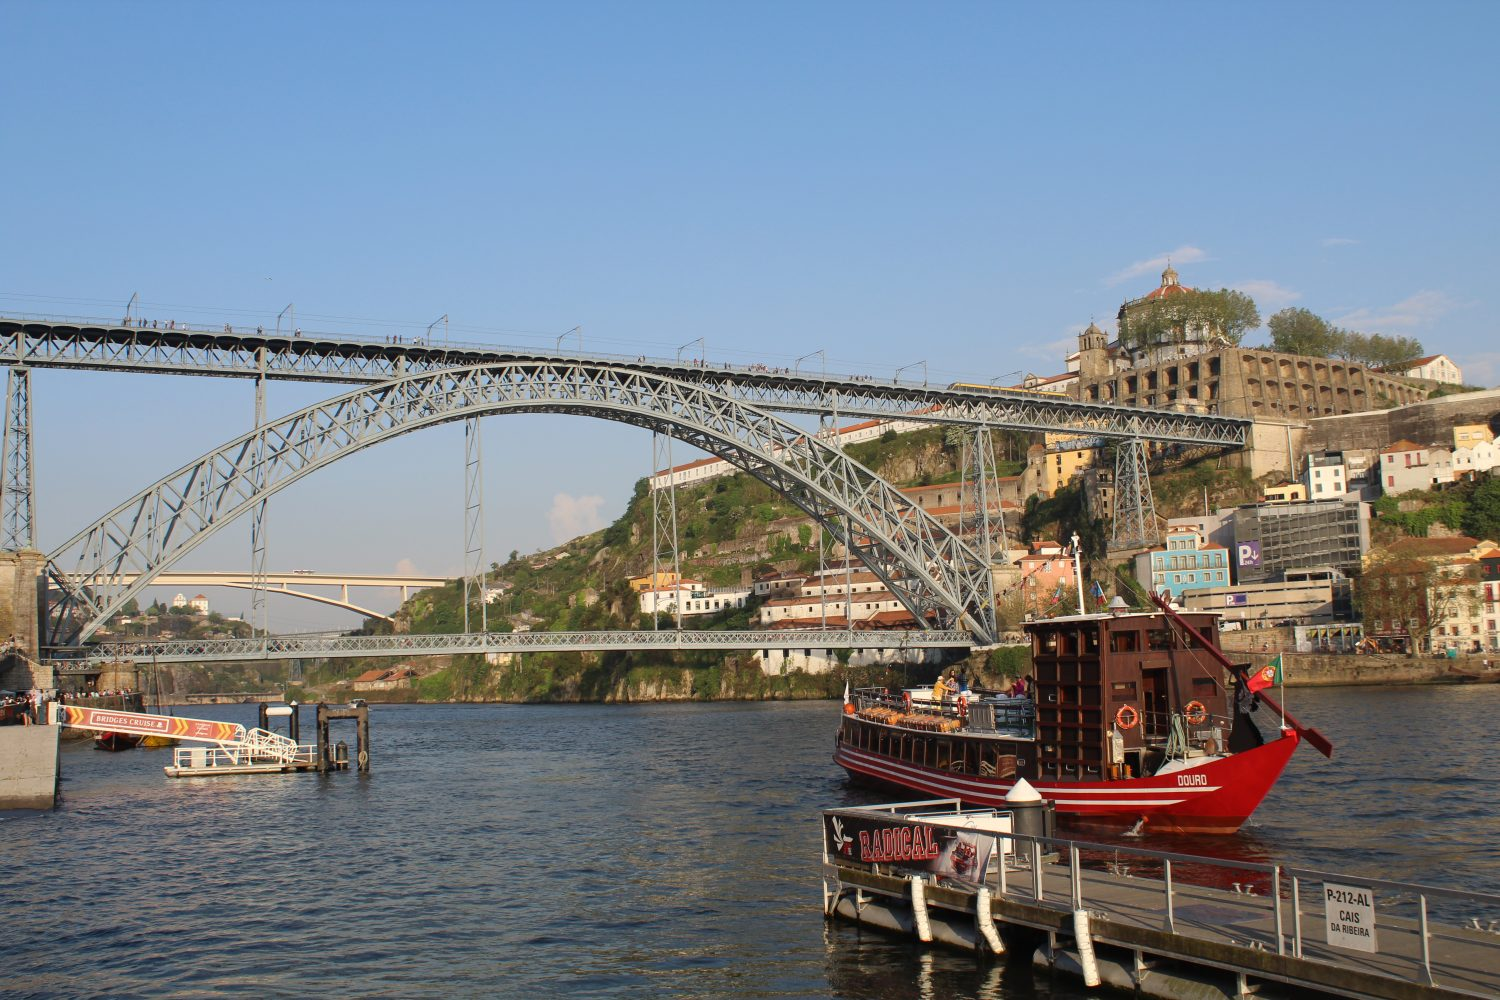 cruise with lunch or dinner to leave the dock of the Douro river with view over Luis I bridge and serra do pilar